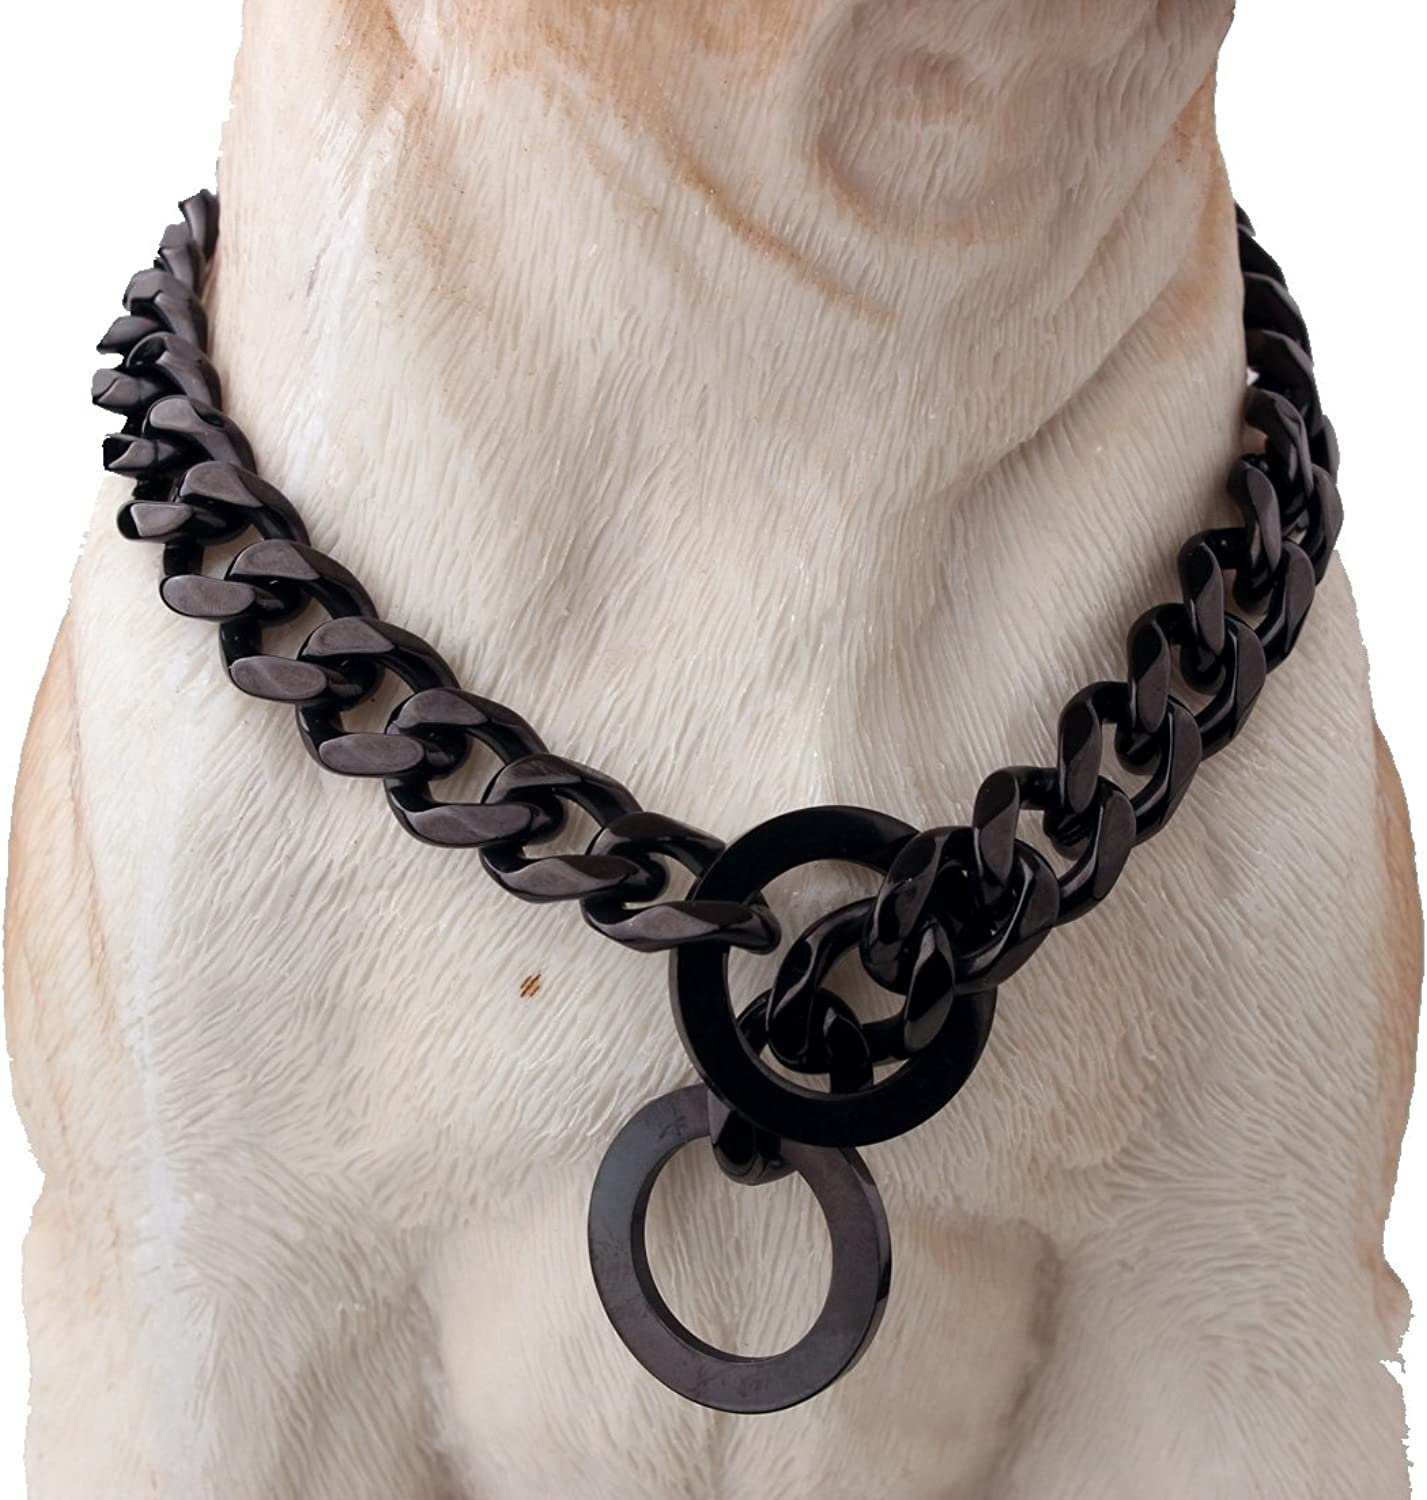 12 15 17 19mm Wide Black Plated Stainless Steel Curb Link Chain Pet GOG Collars Choke for Pit Bull, Mastiff, Bulldog, Big Breeds,1236  (15mm Wide, 26inch)